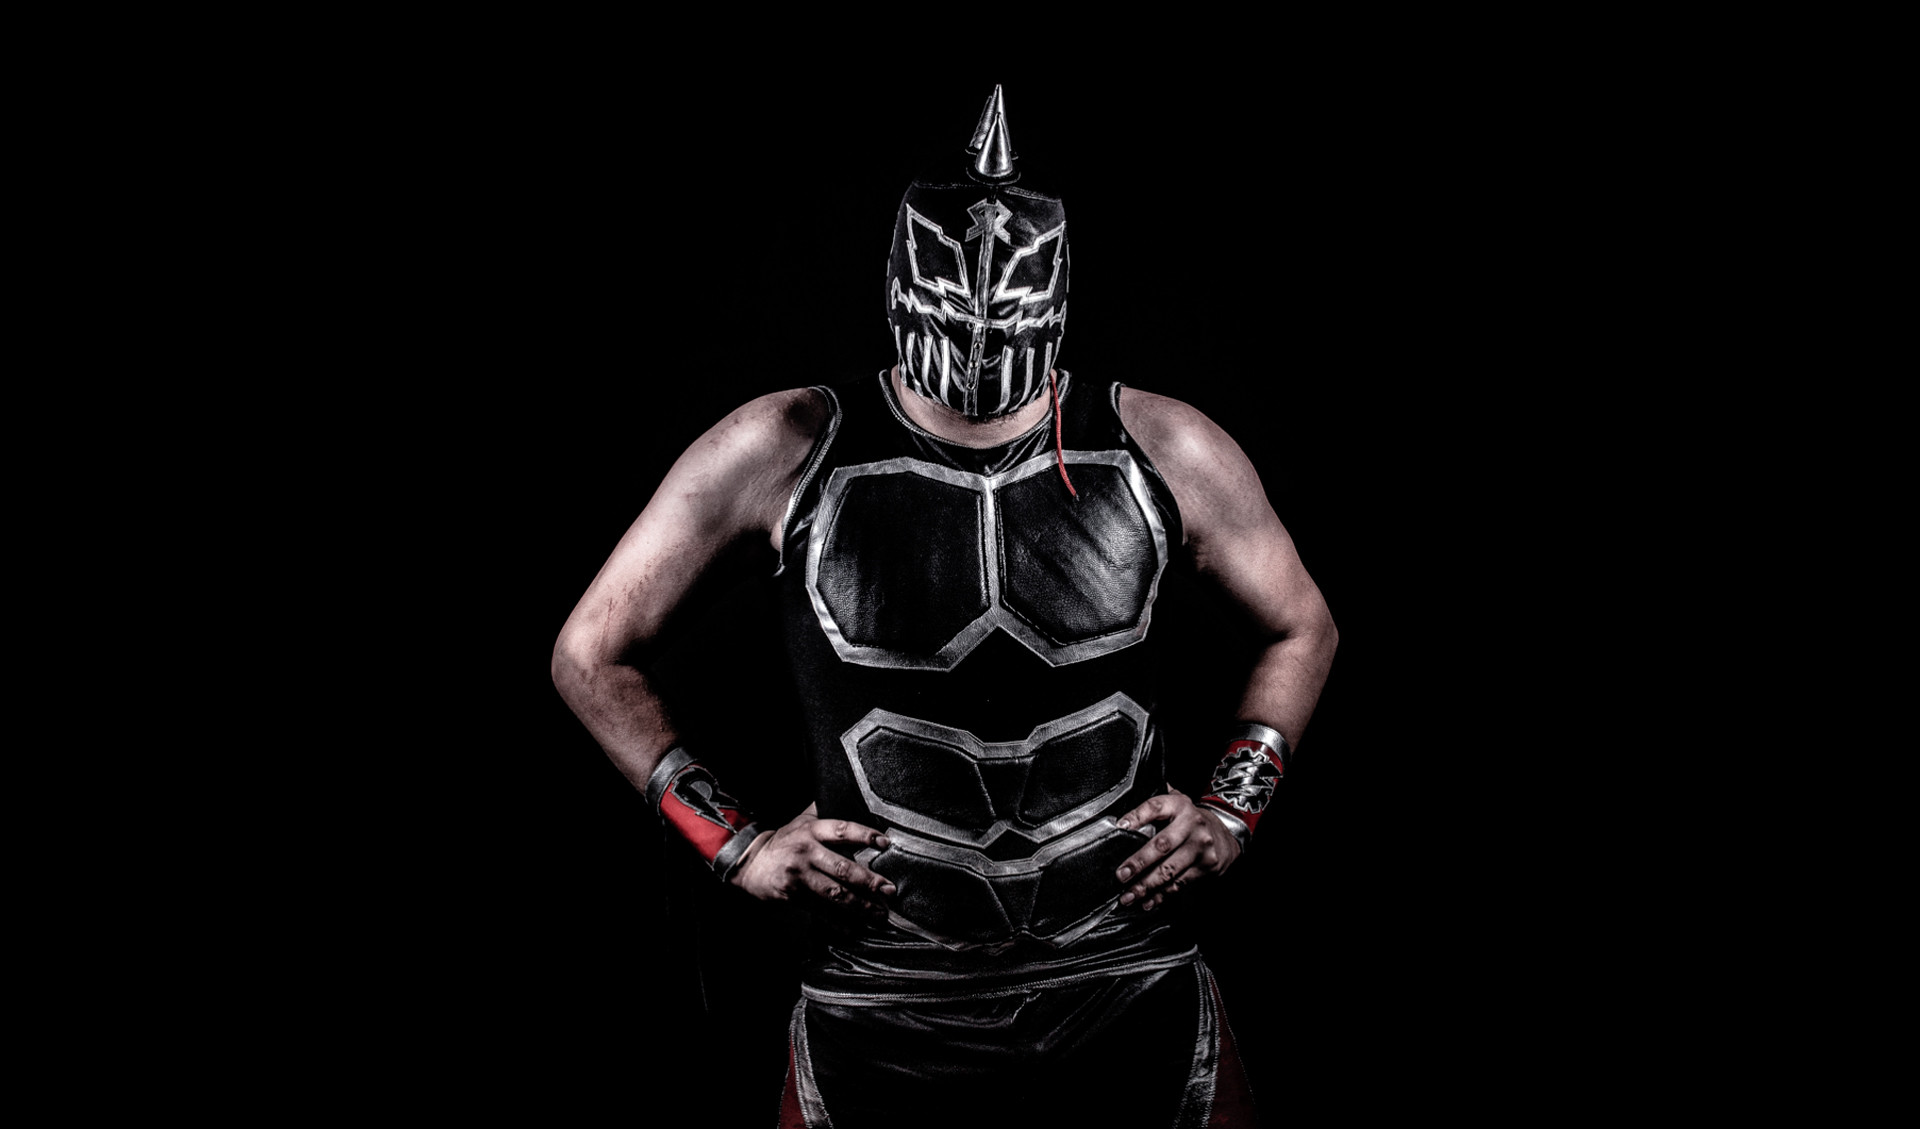 Rocket Studio - Retrato - Pro Wreslting Portrait Pro Wrestling Photography - Fotografía Lucha Libre